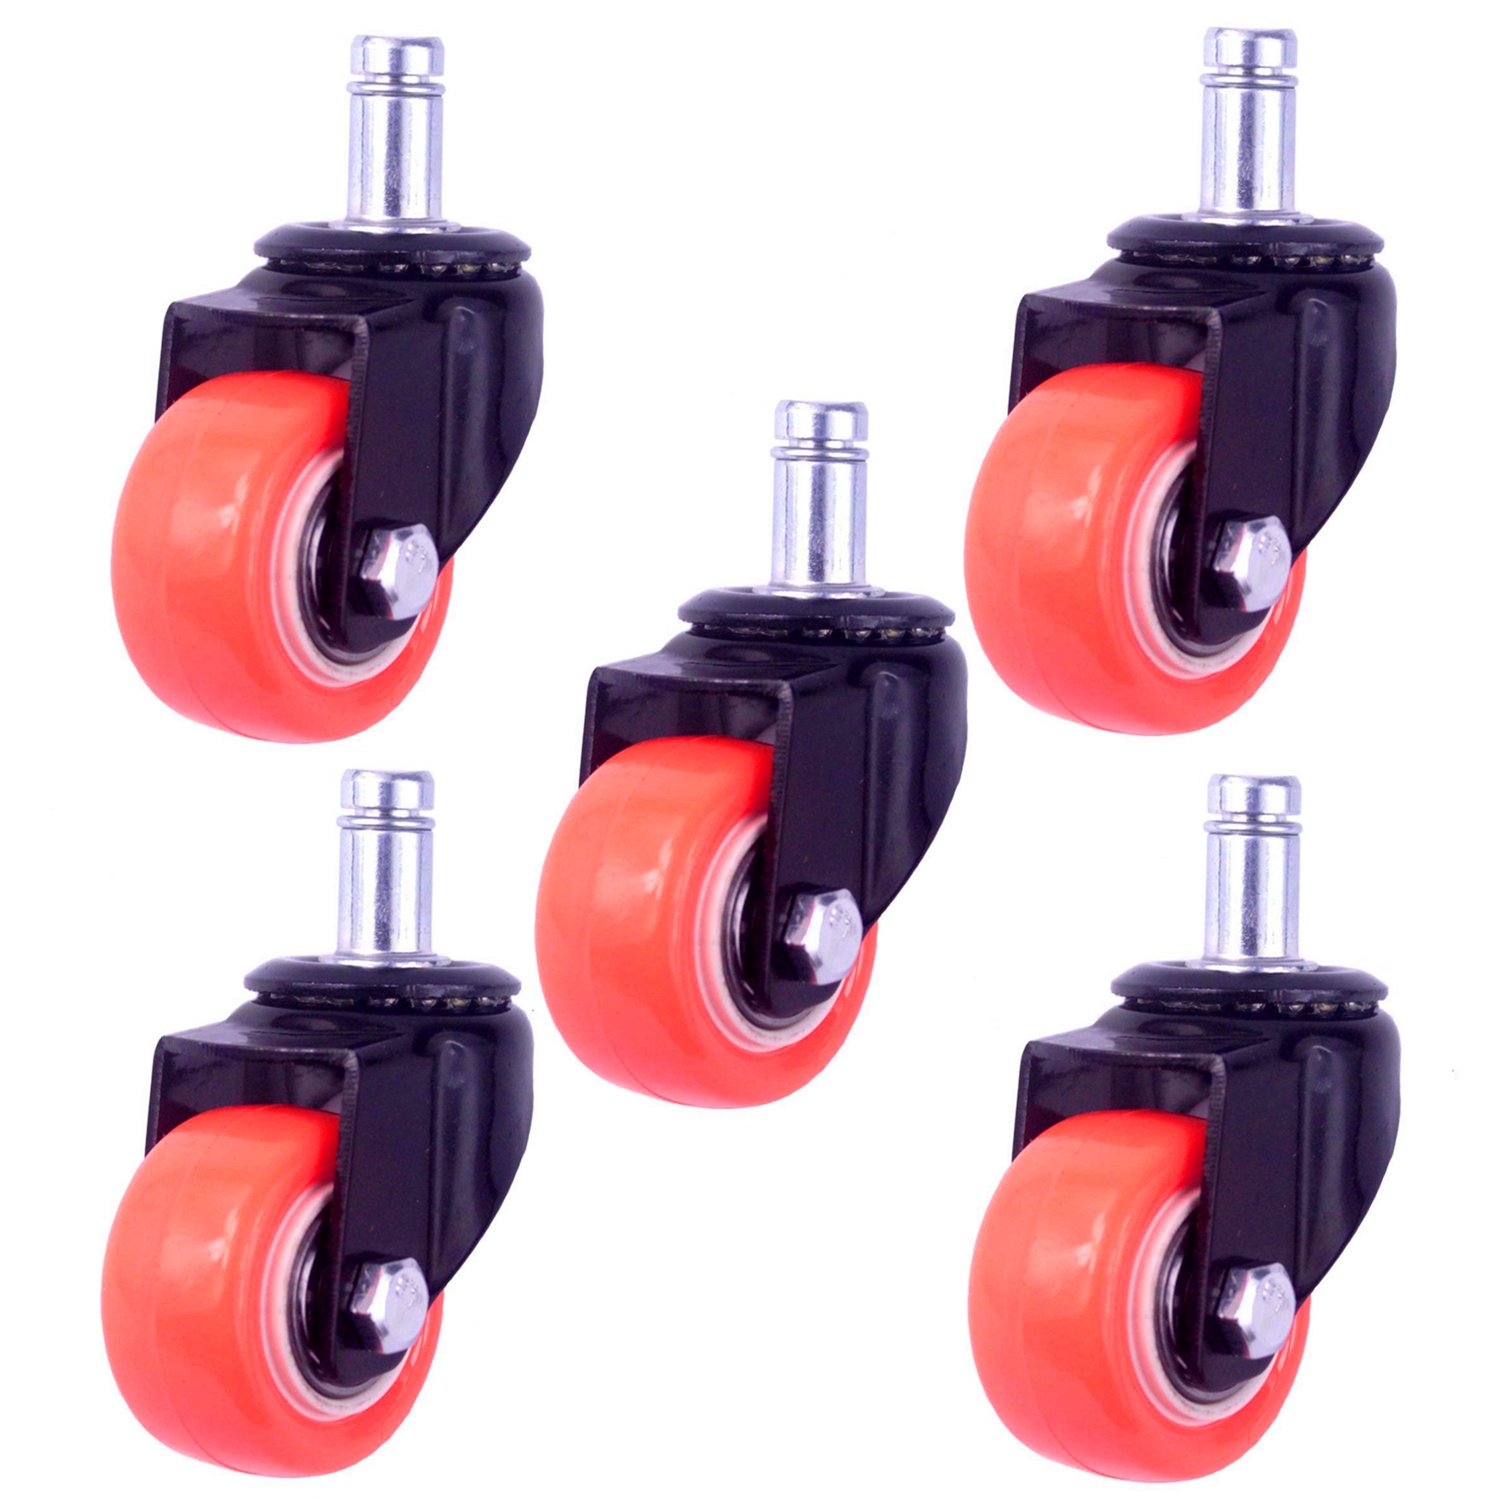 8T8 2'' Replacement Office Chair Caster Wheels Heavy Duty Solid Rubber Safe for Hardwood Tile Floors (7/16x7/8 Stem Orange)